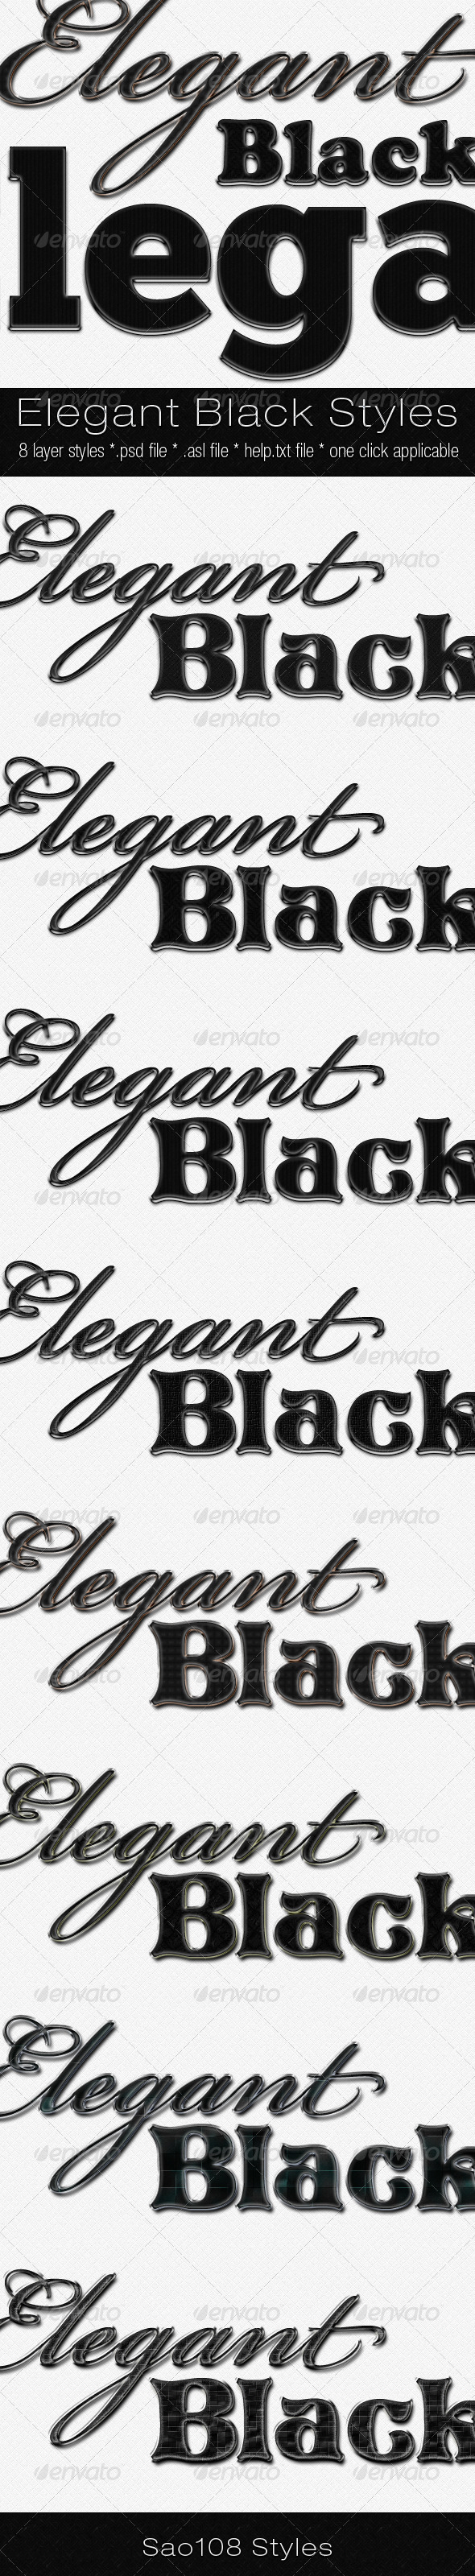 Elegant black styles - Photoshop Add-ons